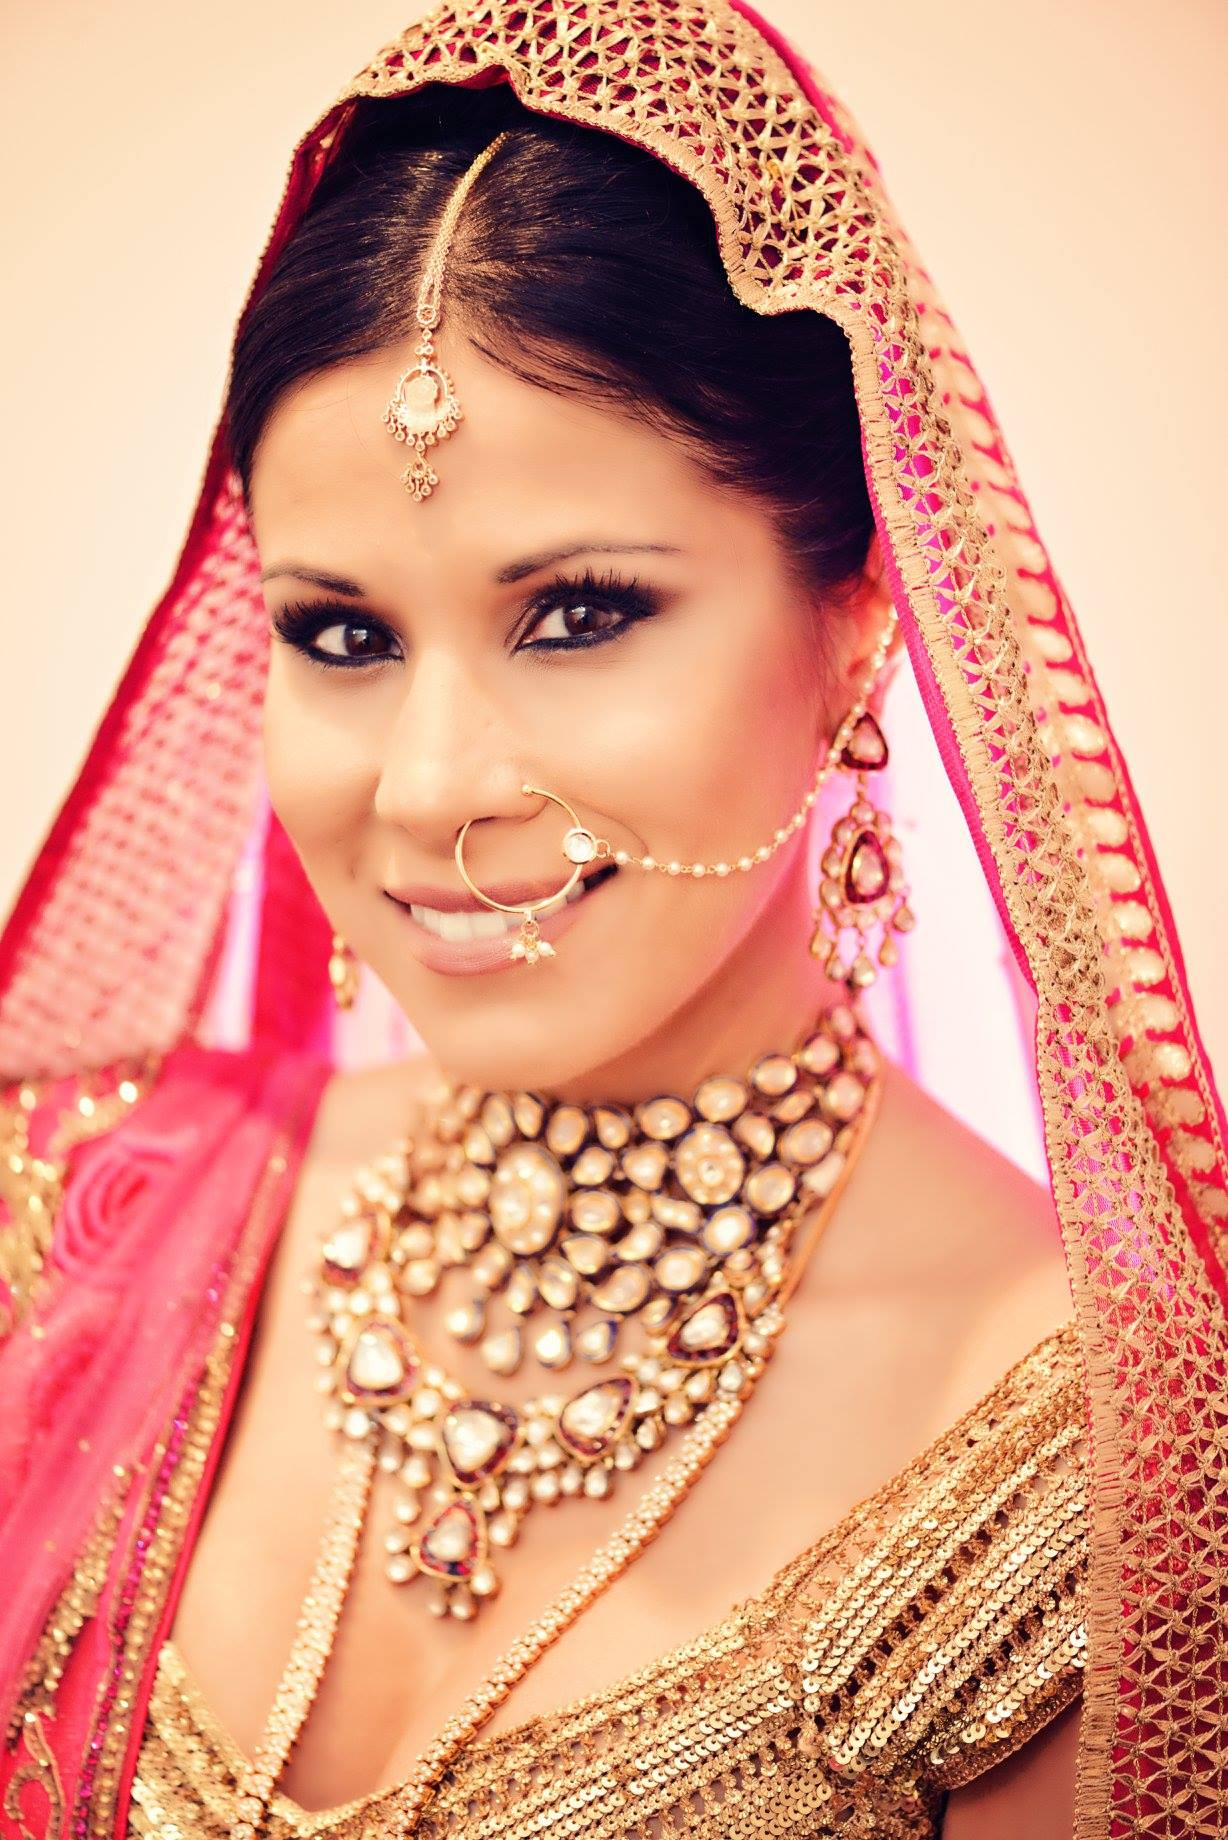 manika indian wedding 2.jpgian 3.jpg